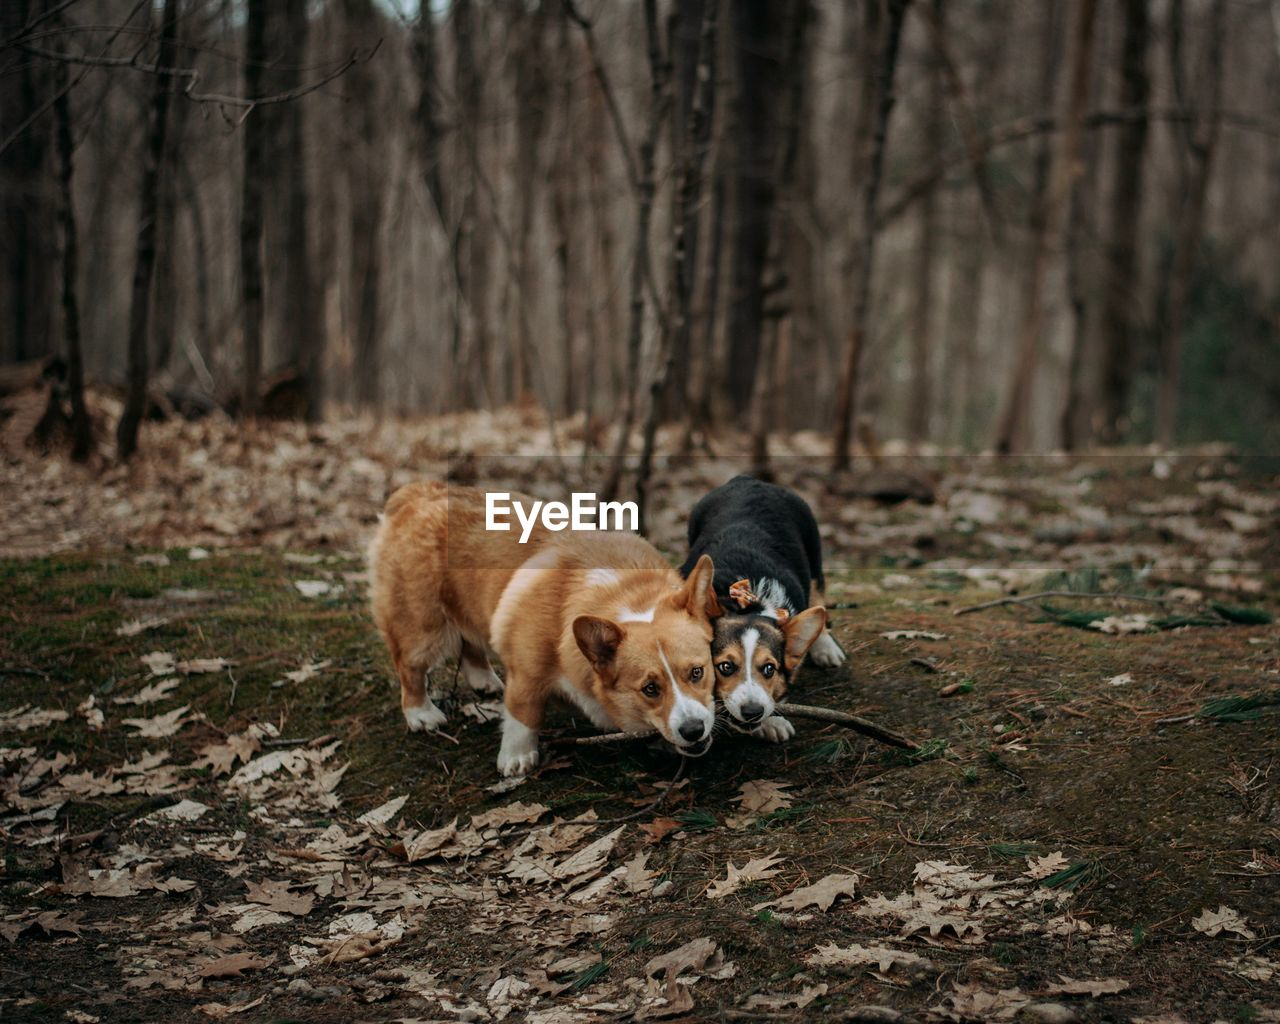 mammal, animal themes, animal, one animal, domestic animals, domestic, pets, land, tree, vertebrate, dog, canine, forest, nature, no people, plant, day, field, full length, woodland, outdoors, purebred dog